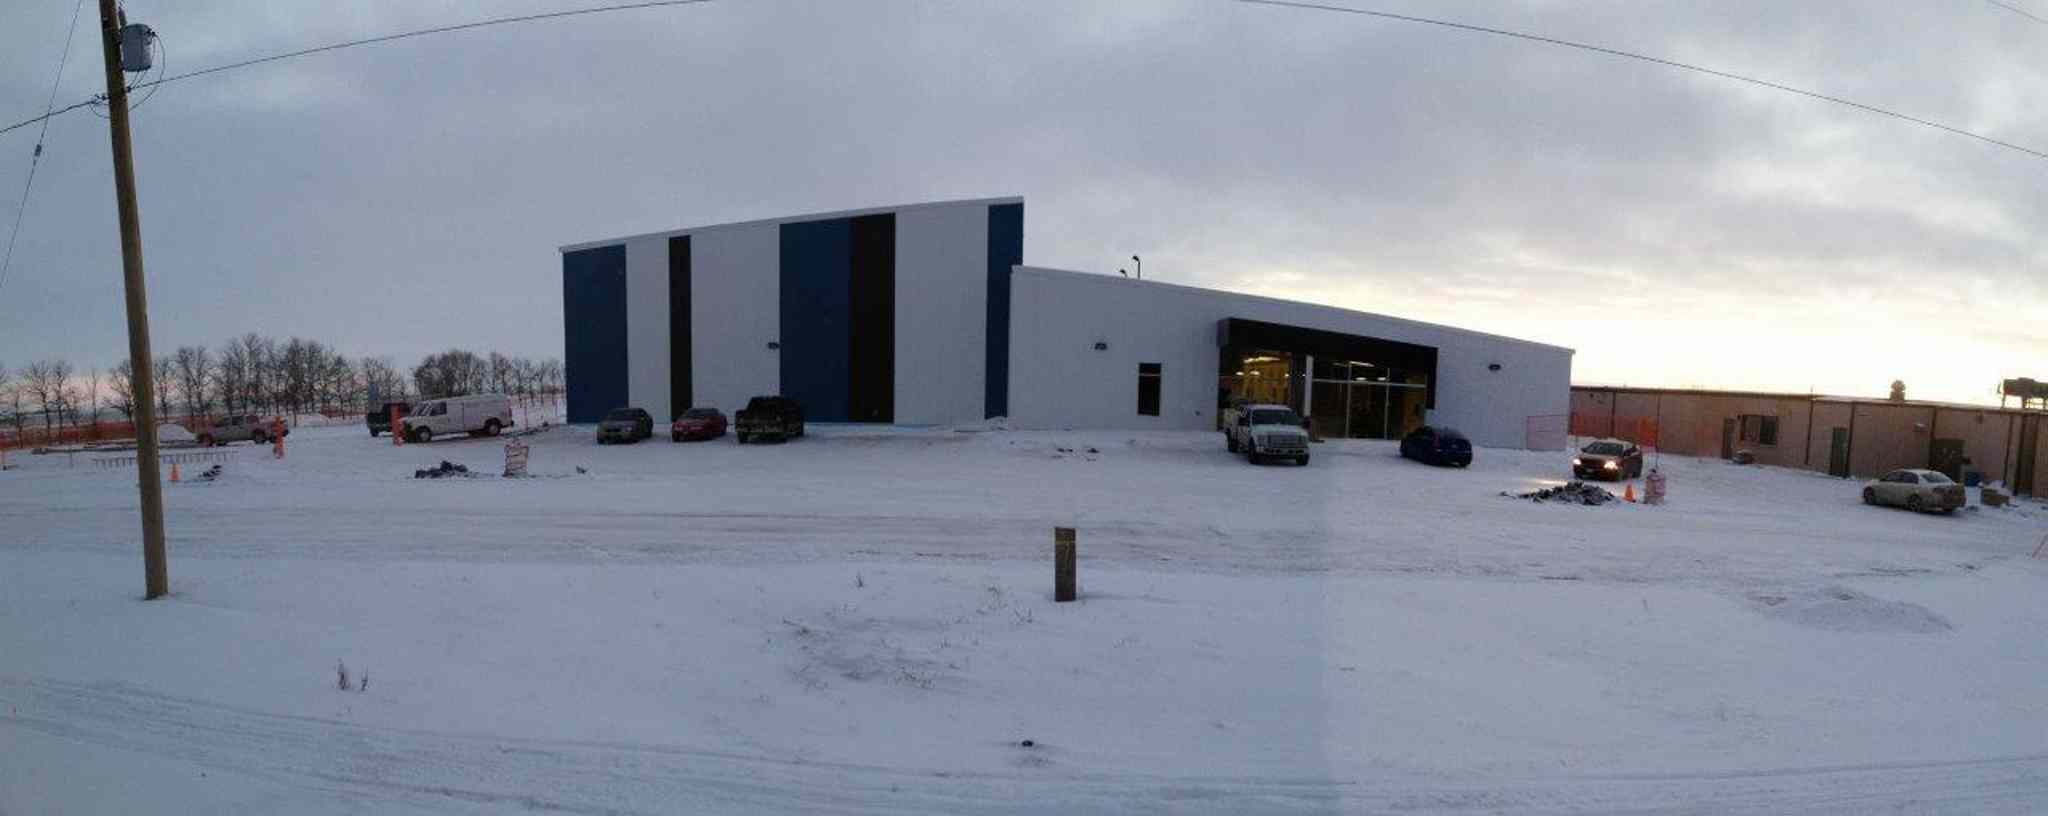 The new La Salle Community Centre's exterior is finished, but work continues inside prior to its grand opening on Feb. 8, 2014.